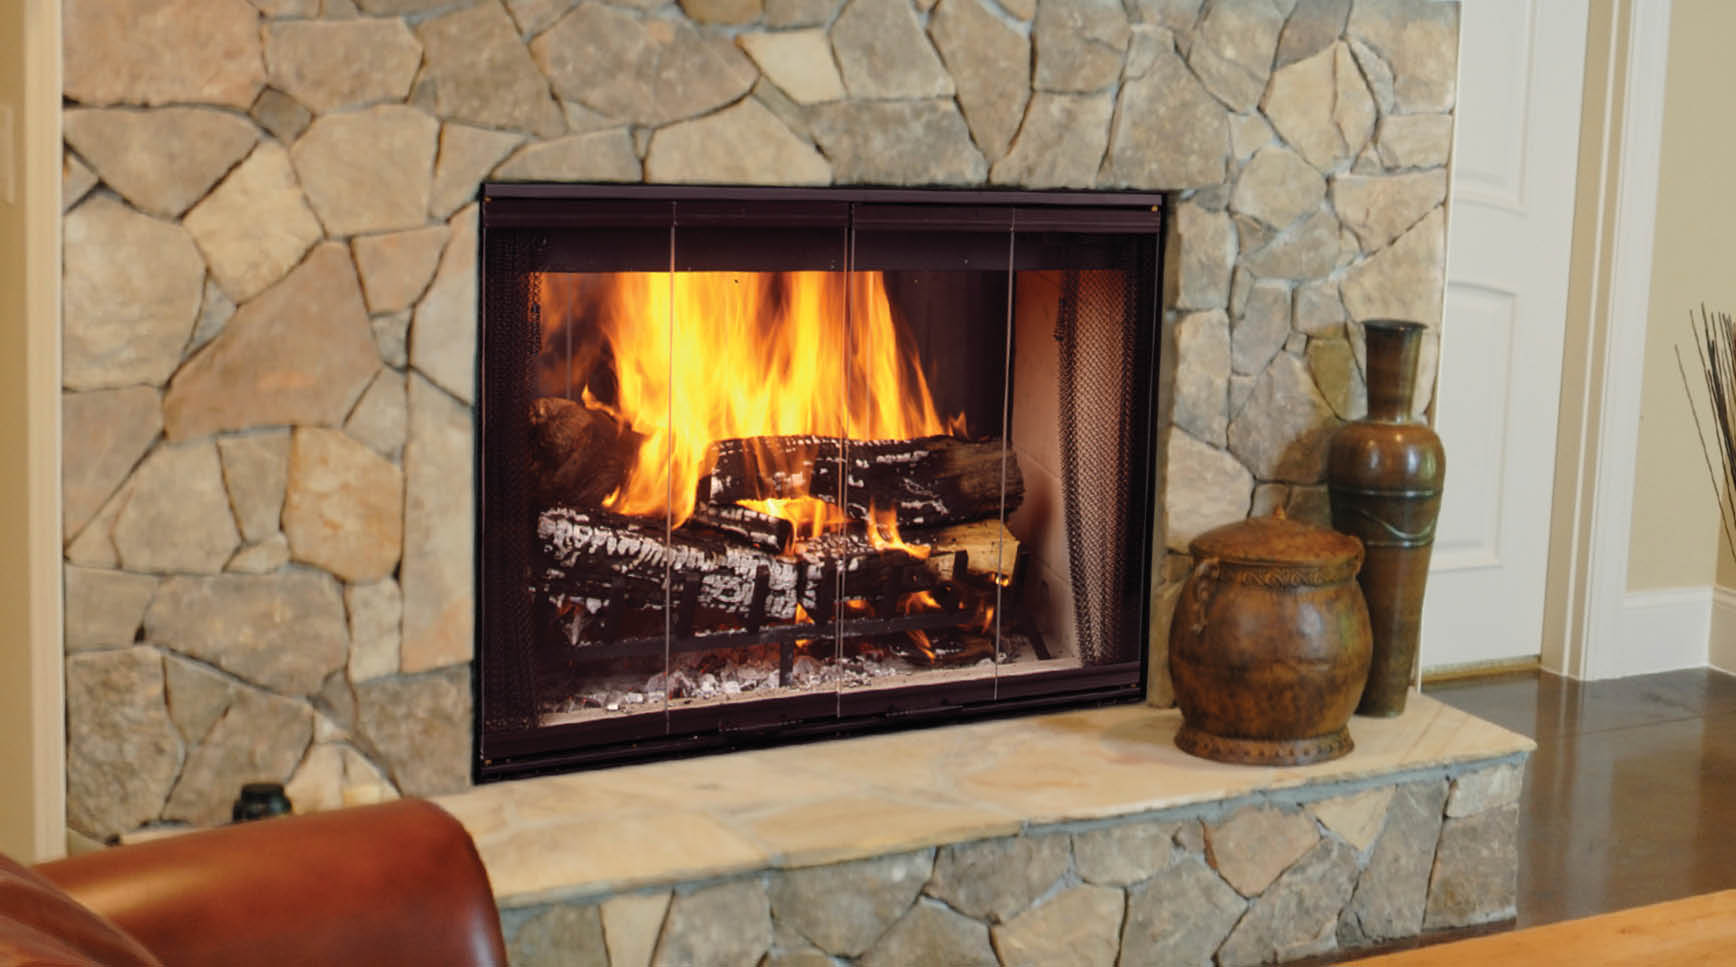 Uintah Gas Fireplaces has installed dozens of fireplaces over the years. Check out our photo gallery to see all the amazing projects we have completed.